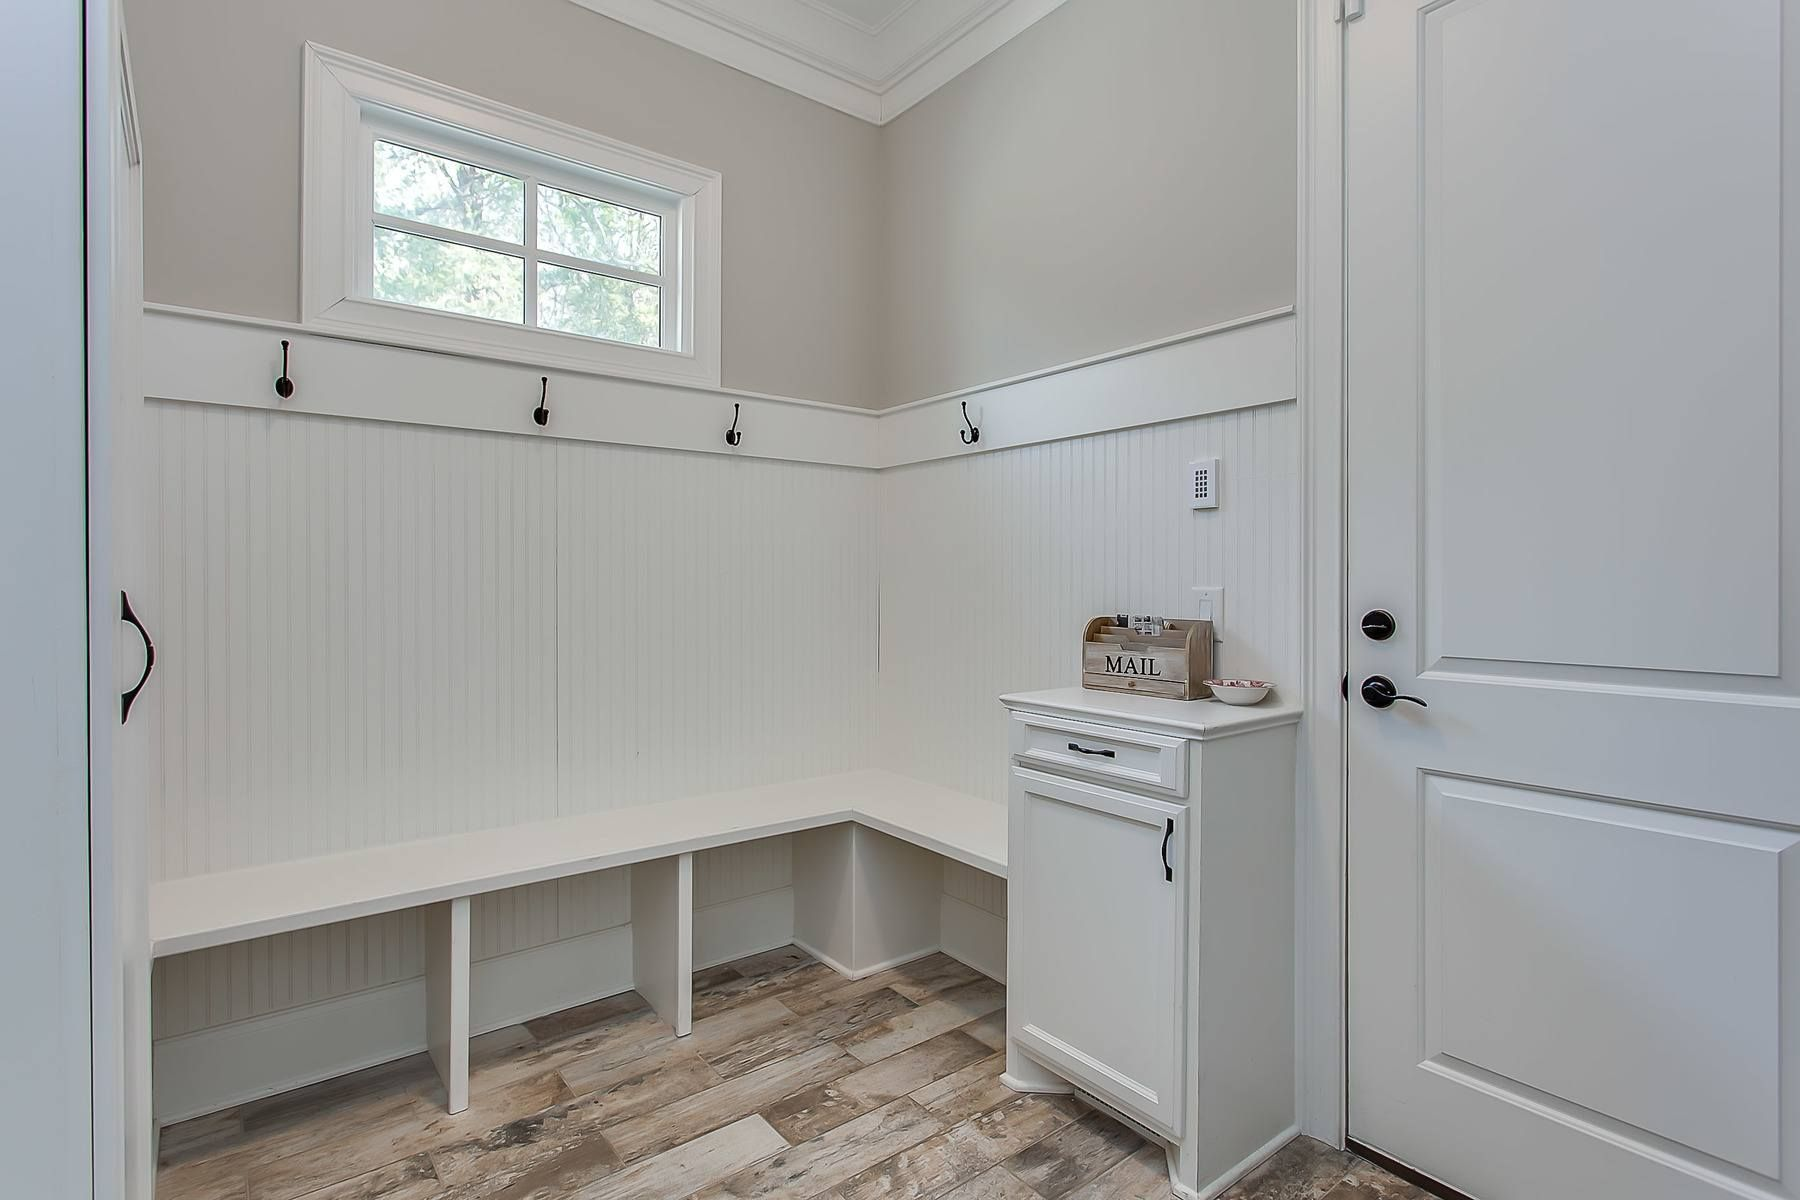 This mudroom is designed to keep an active family on the up-and-up, and the bead board and slate flooring are the understated upgrades that we love to see!